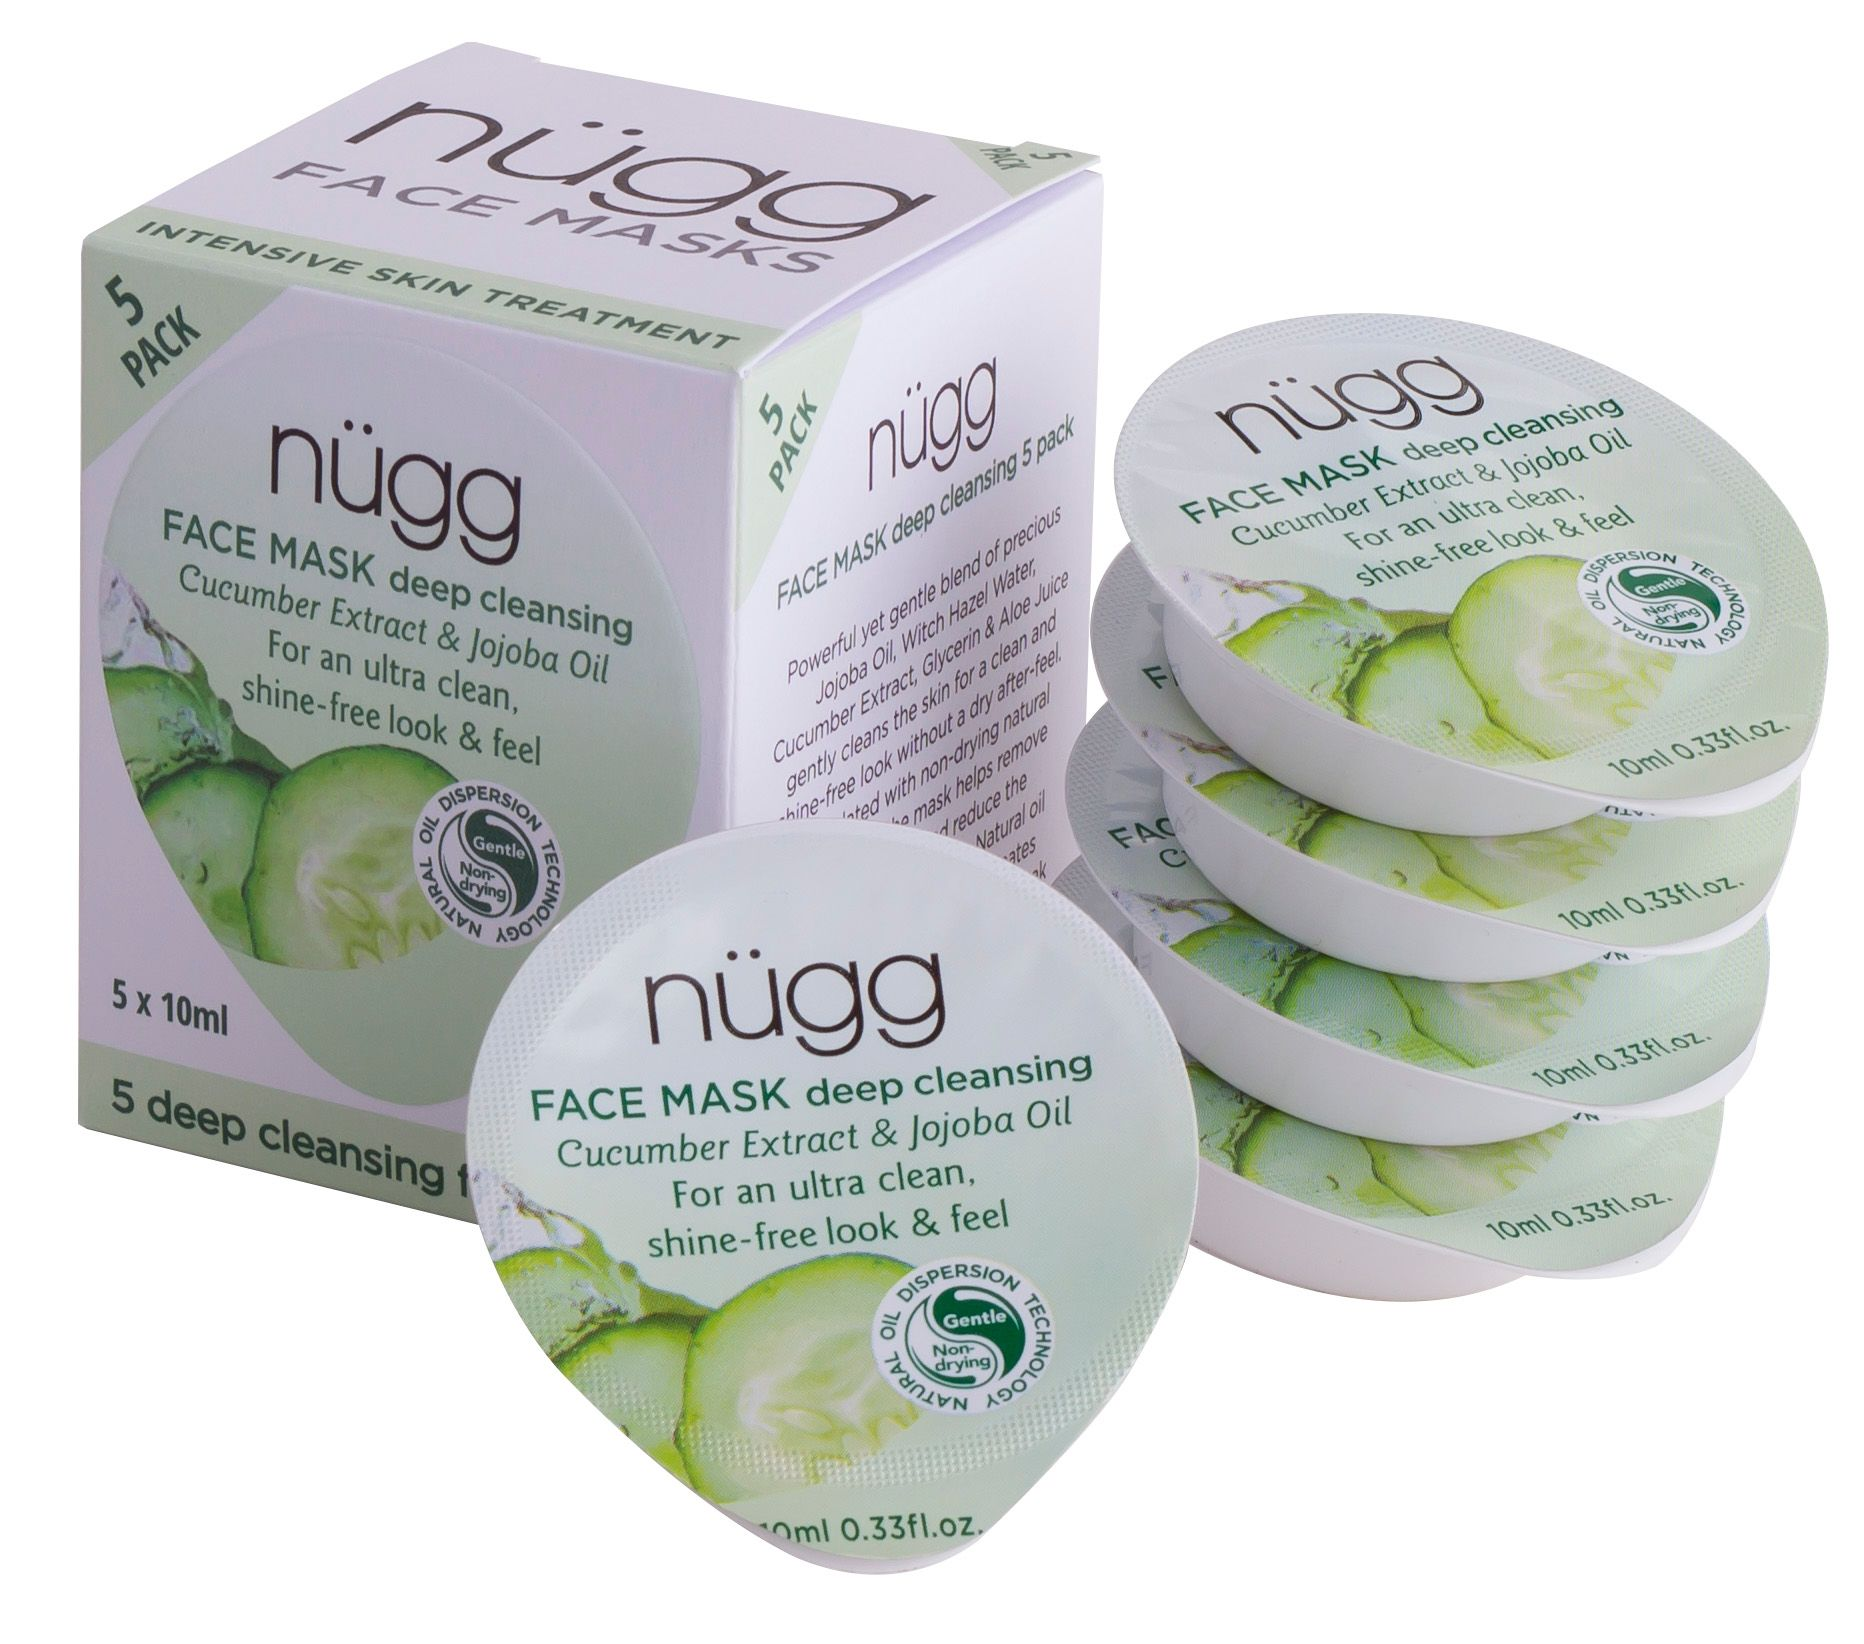 Nugg Deep Cleansing Face Mask 5 Pack